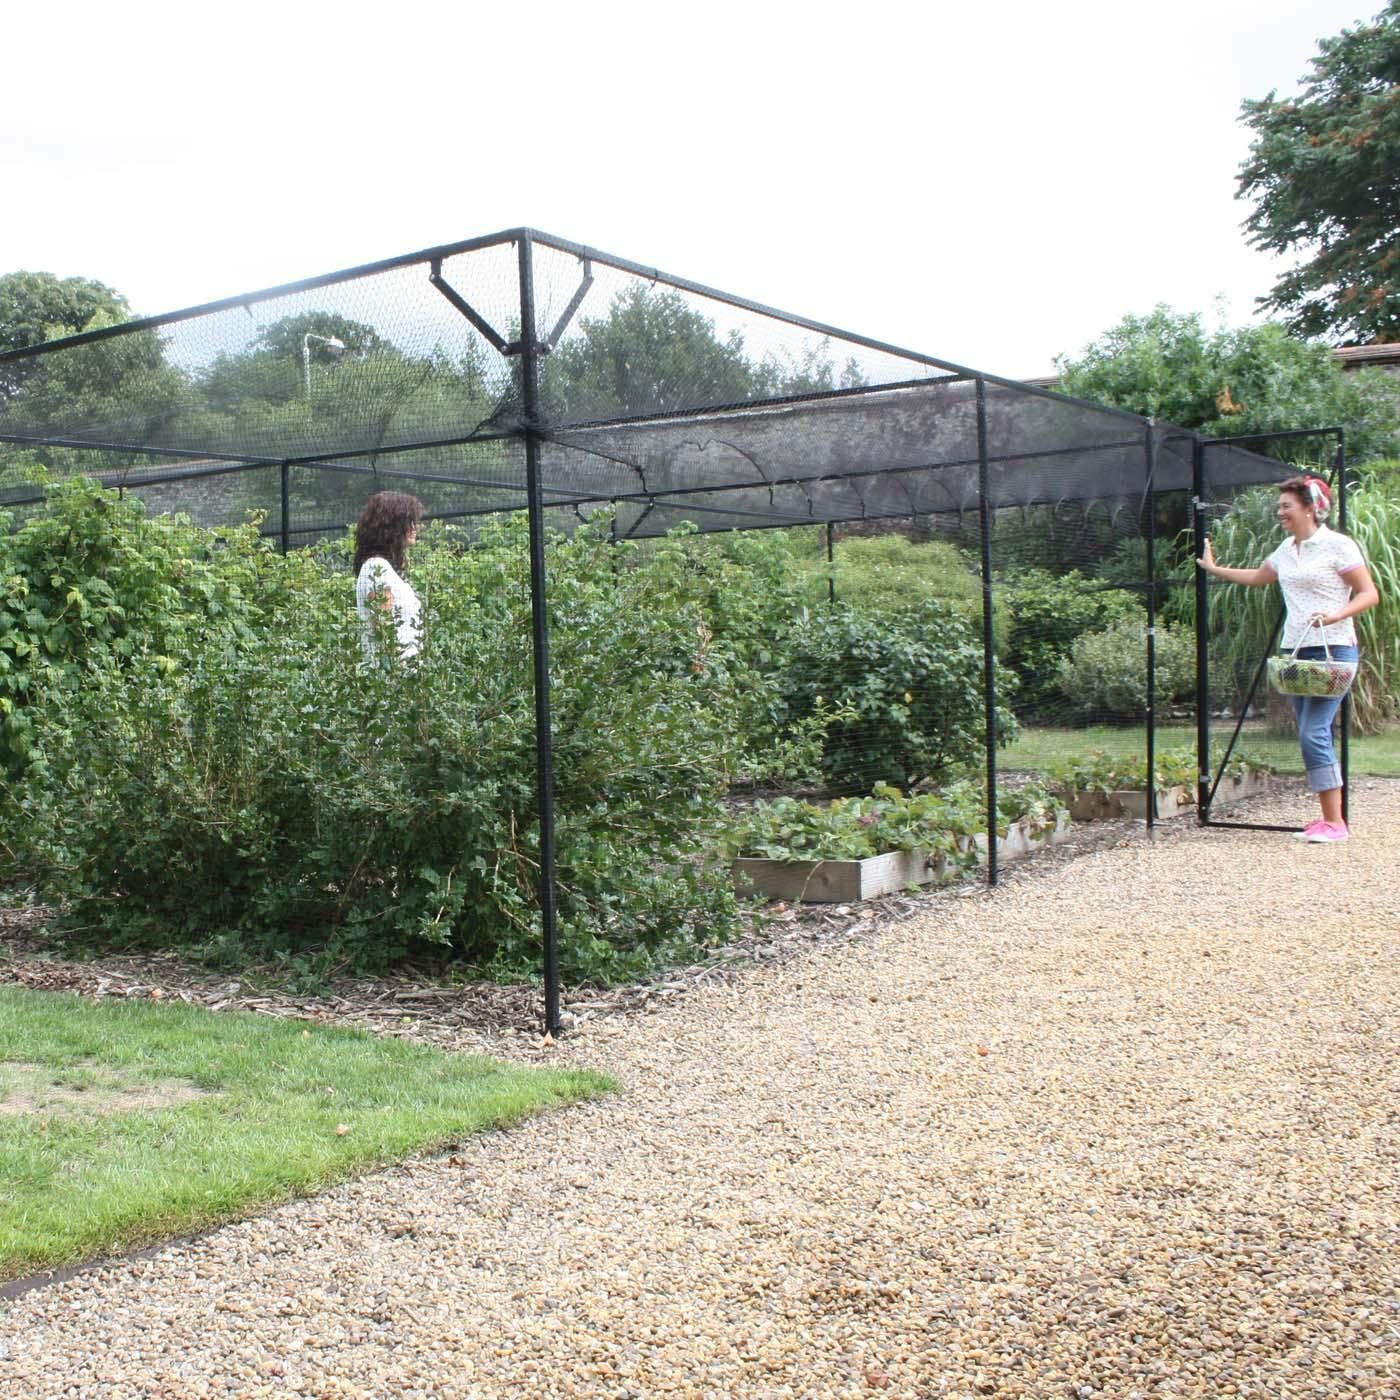 Steel Fruit Cages Fruit Cage Plant Cages Greenhouse Plans